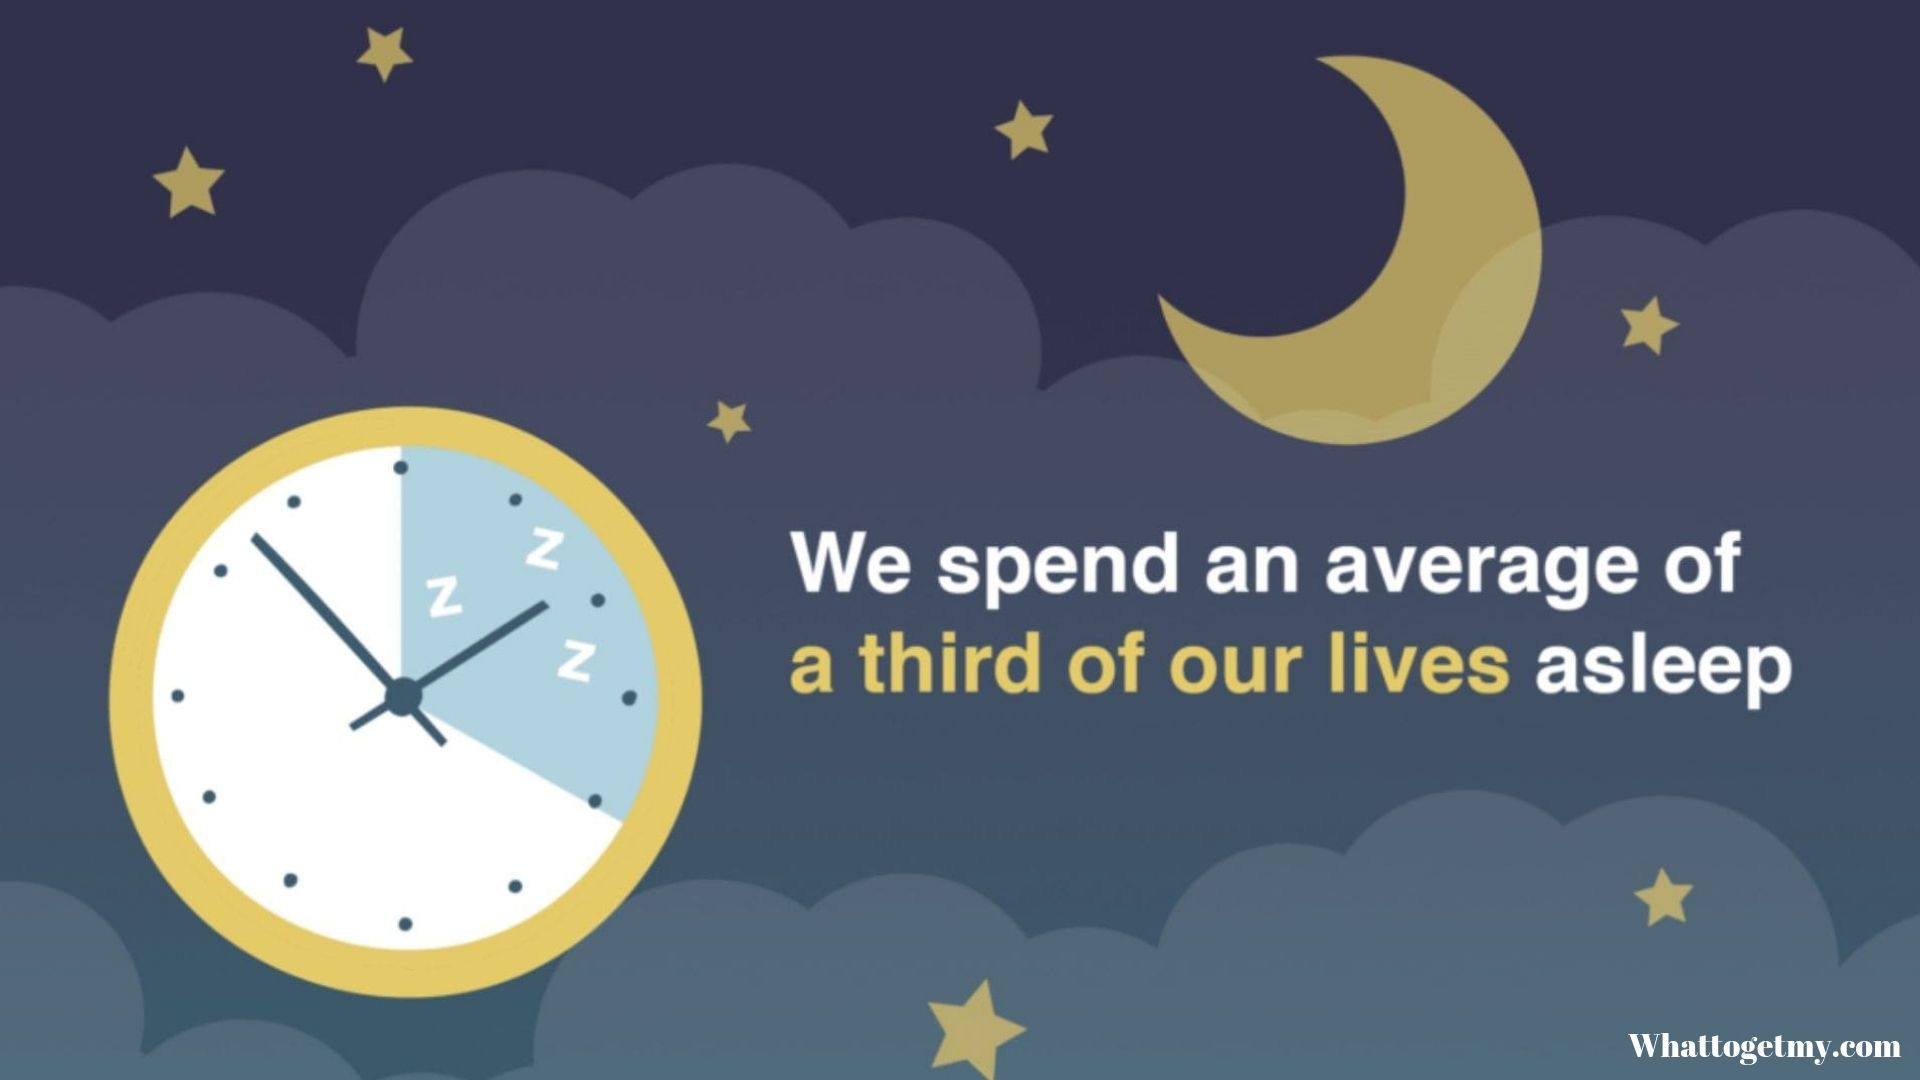 We spend nearly a third of our lives asleep